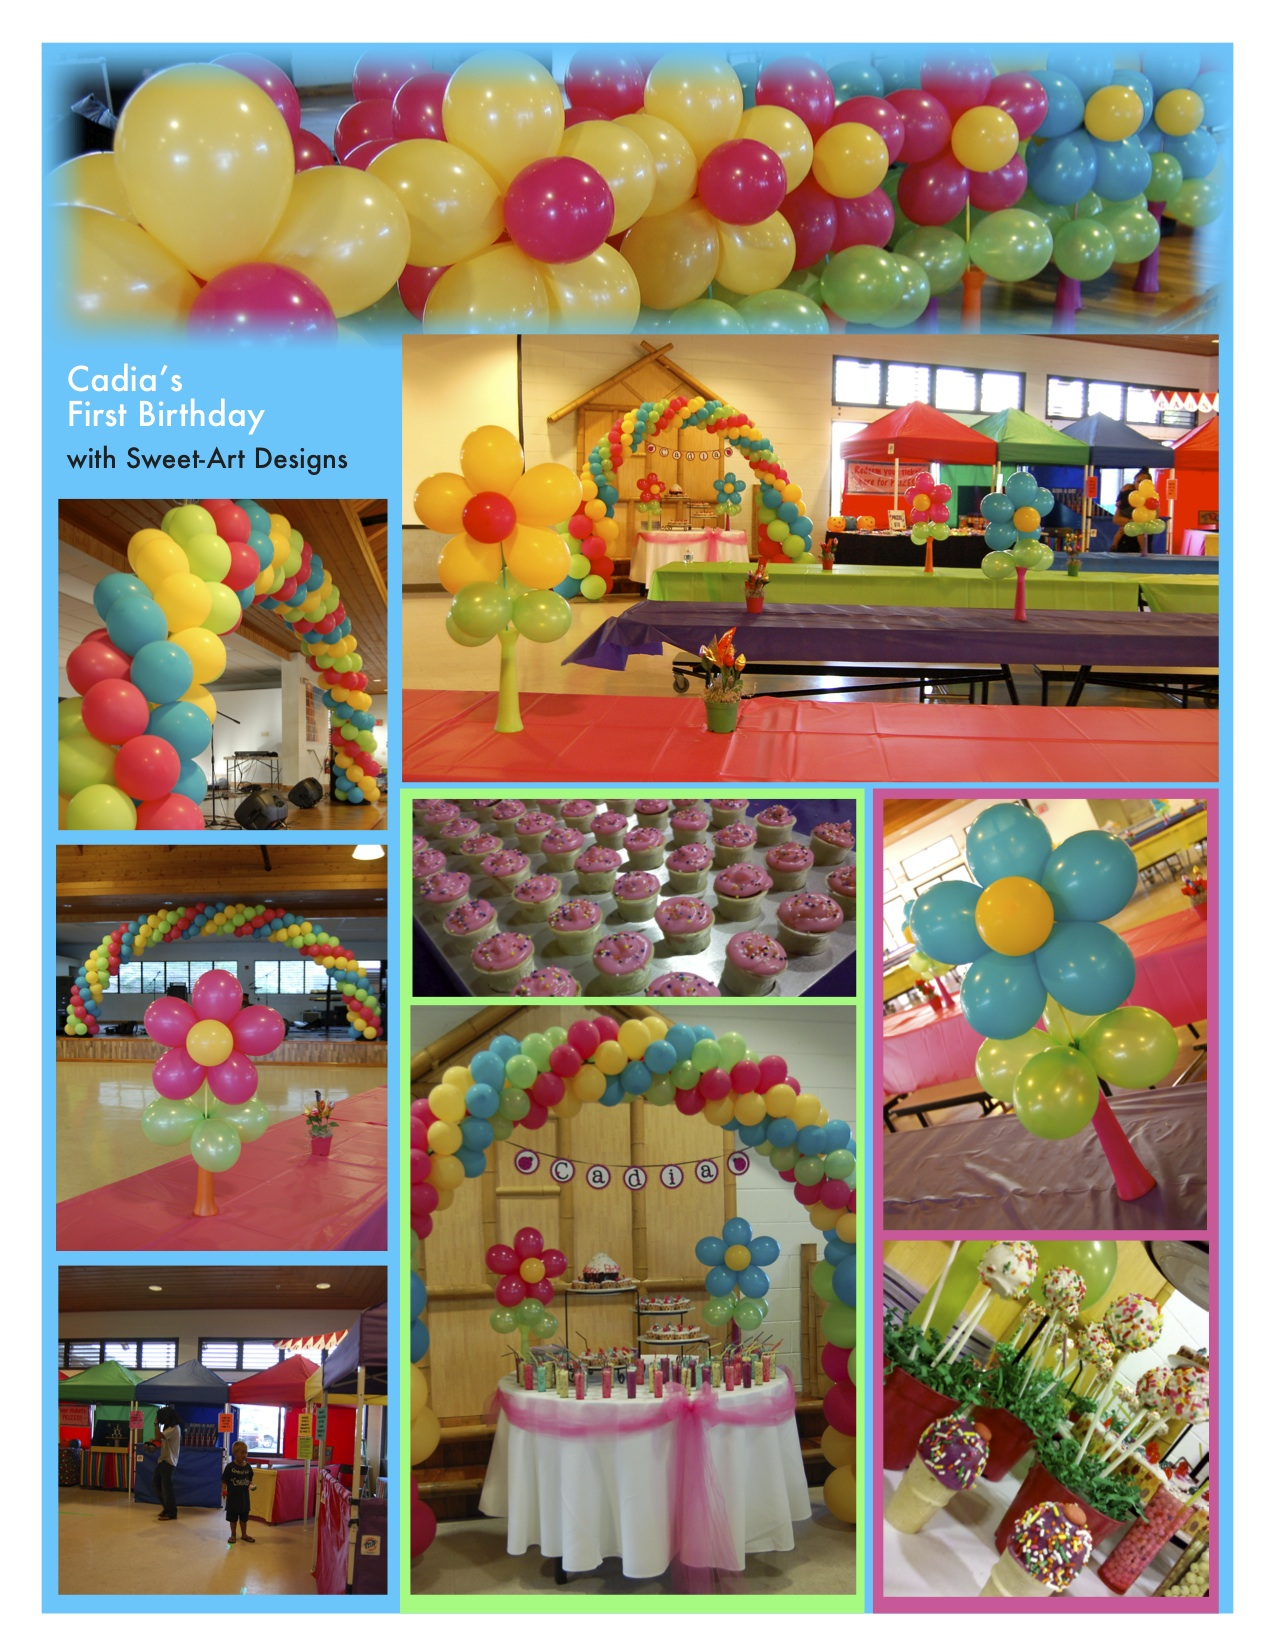 Decorations sweet art designs creative ideas from the for Balloon decoration for 1st birthday party